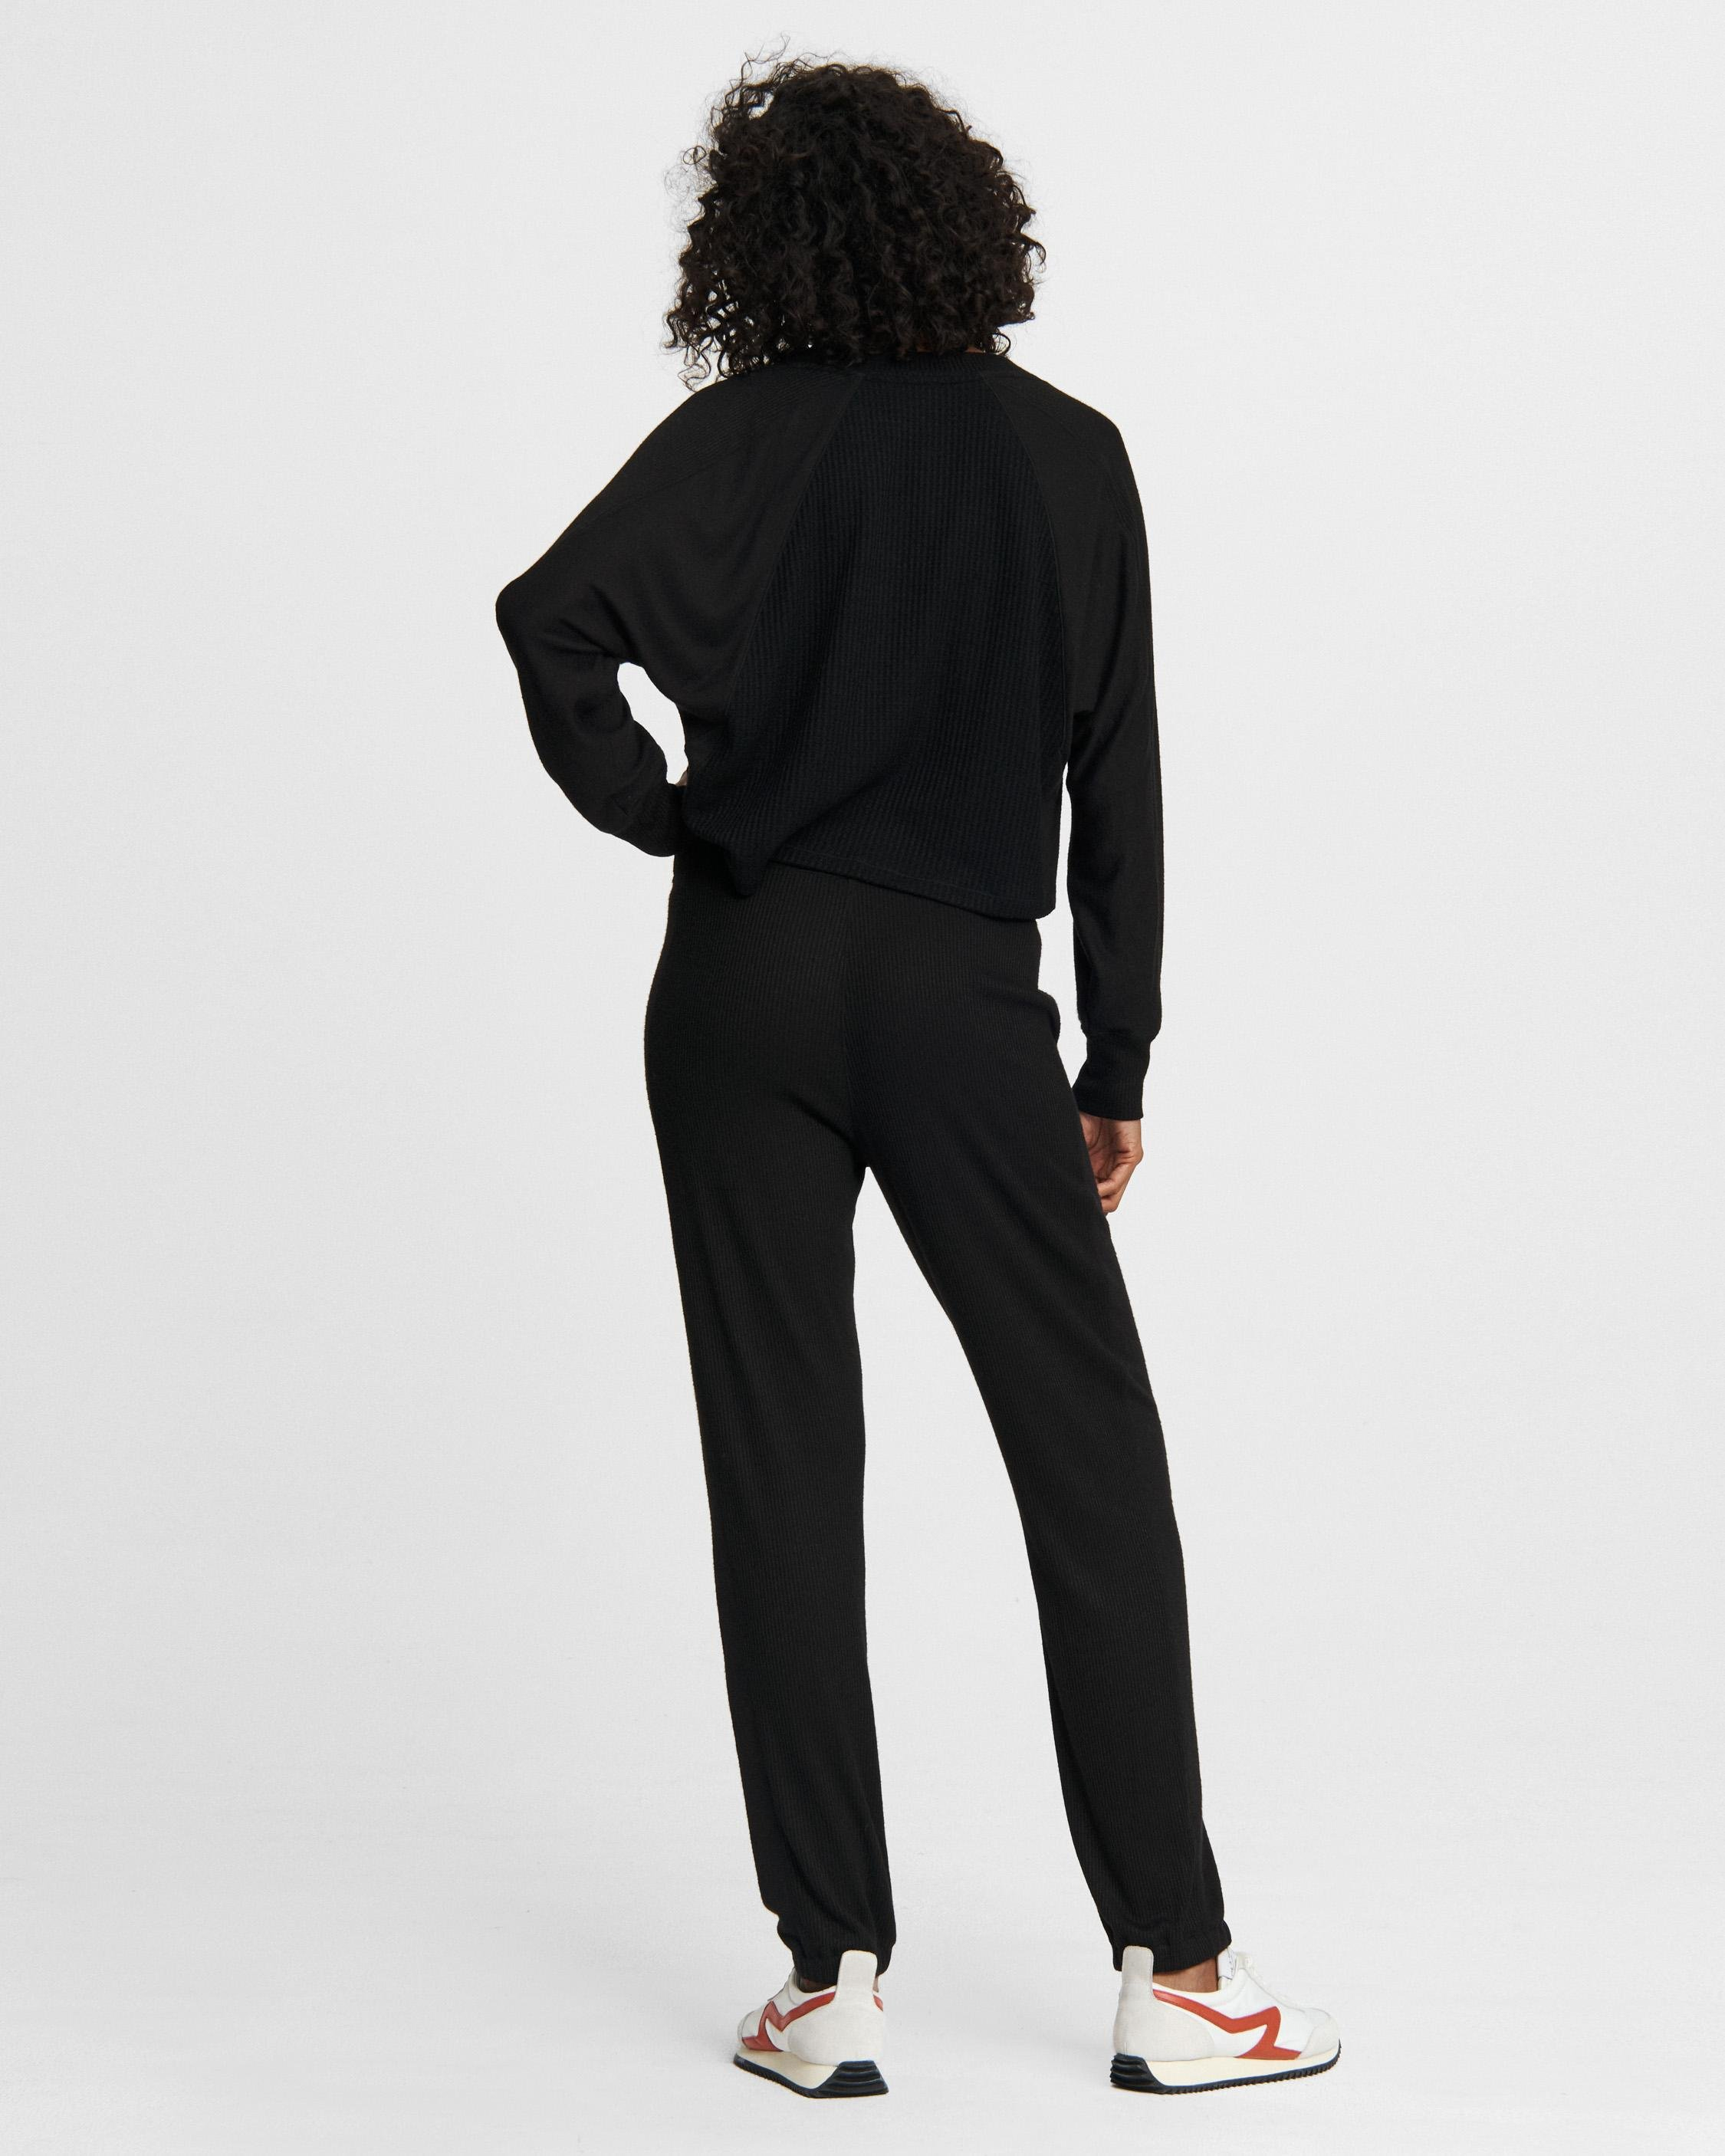 The knit jersey pant 2